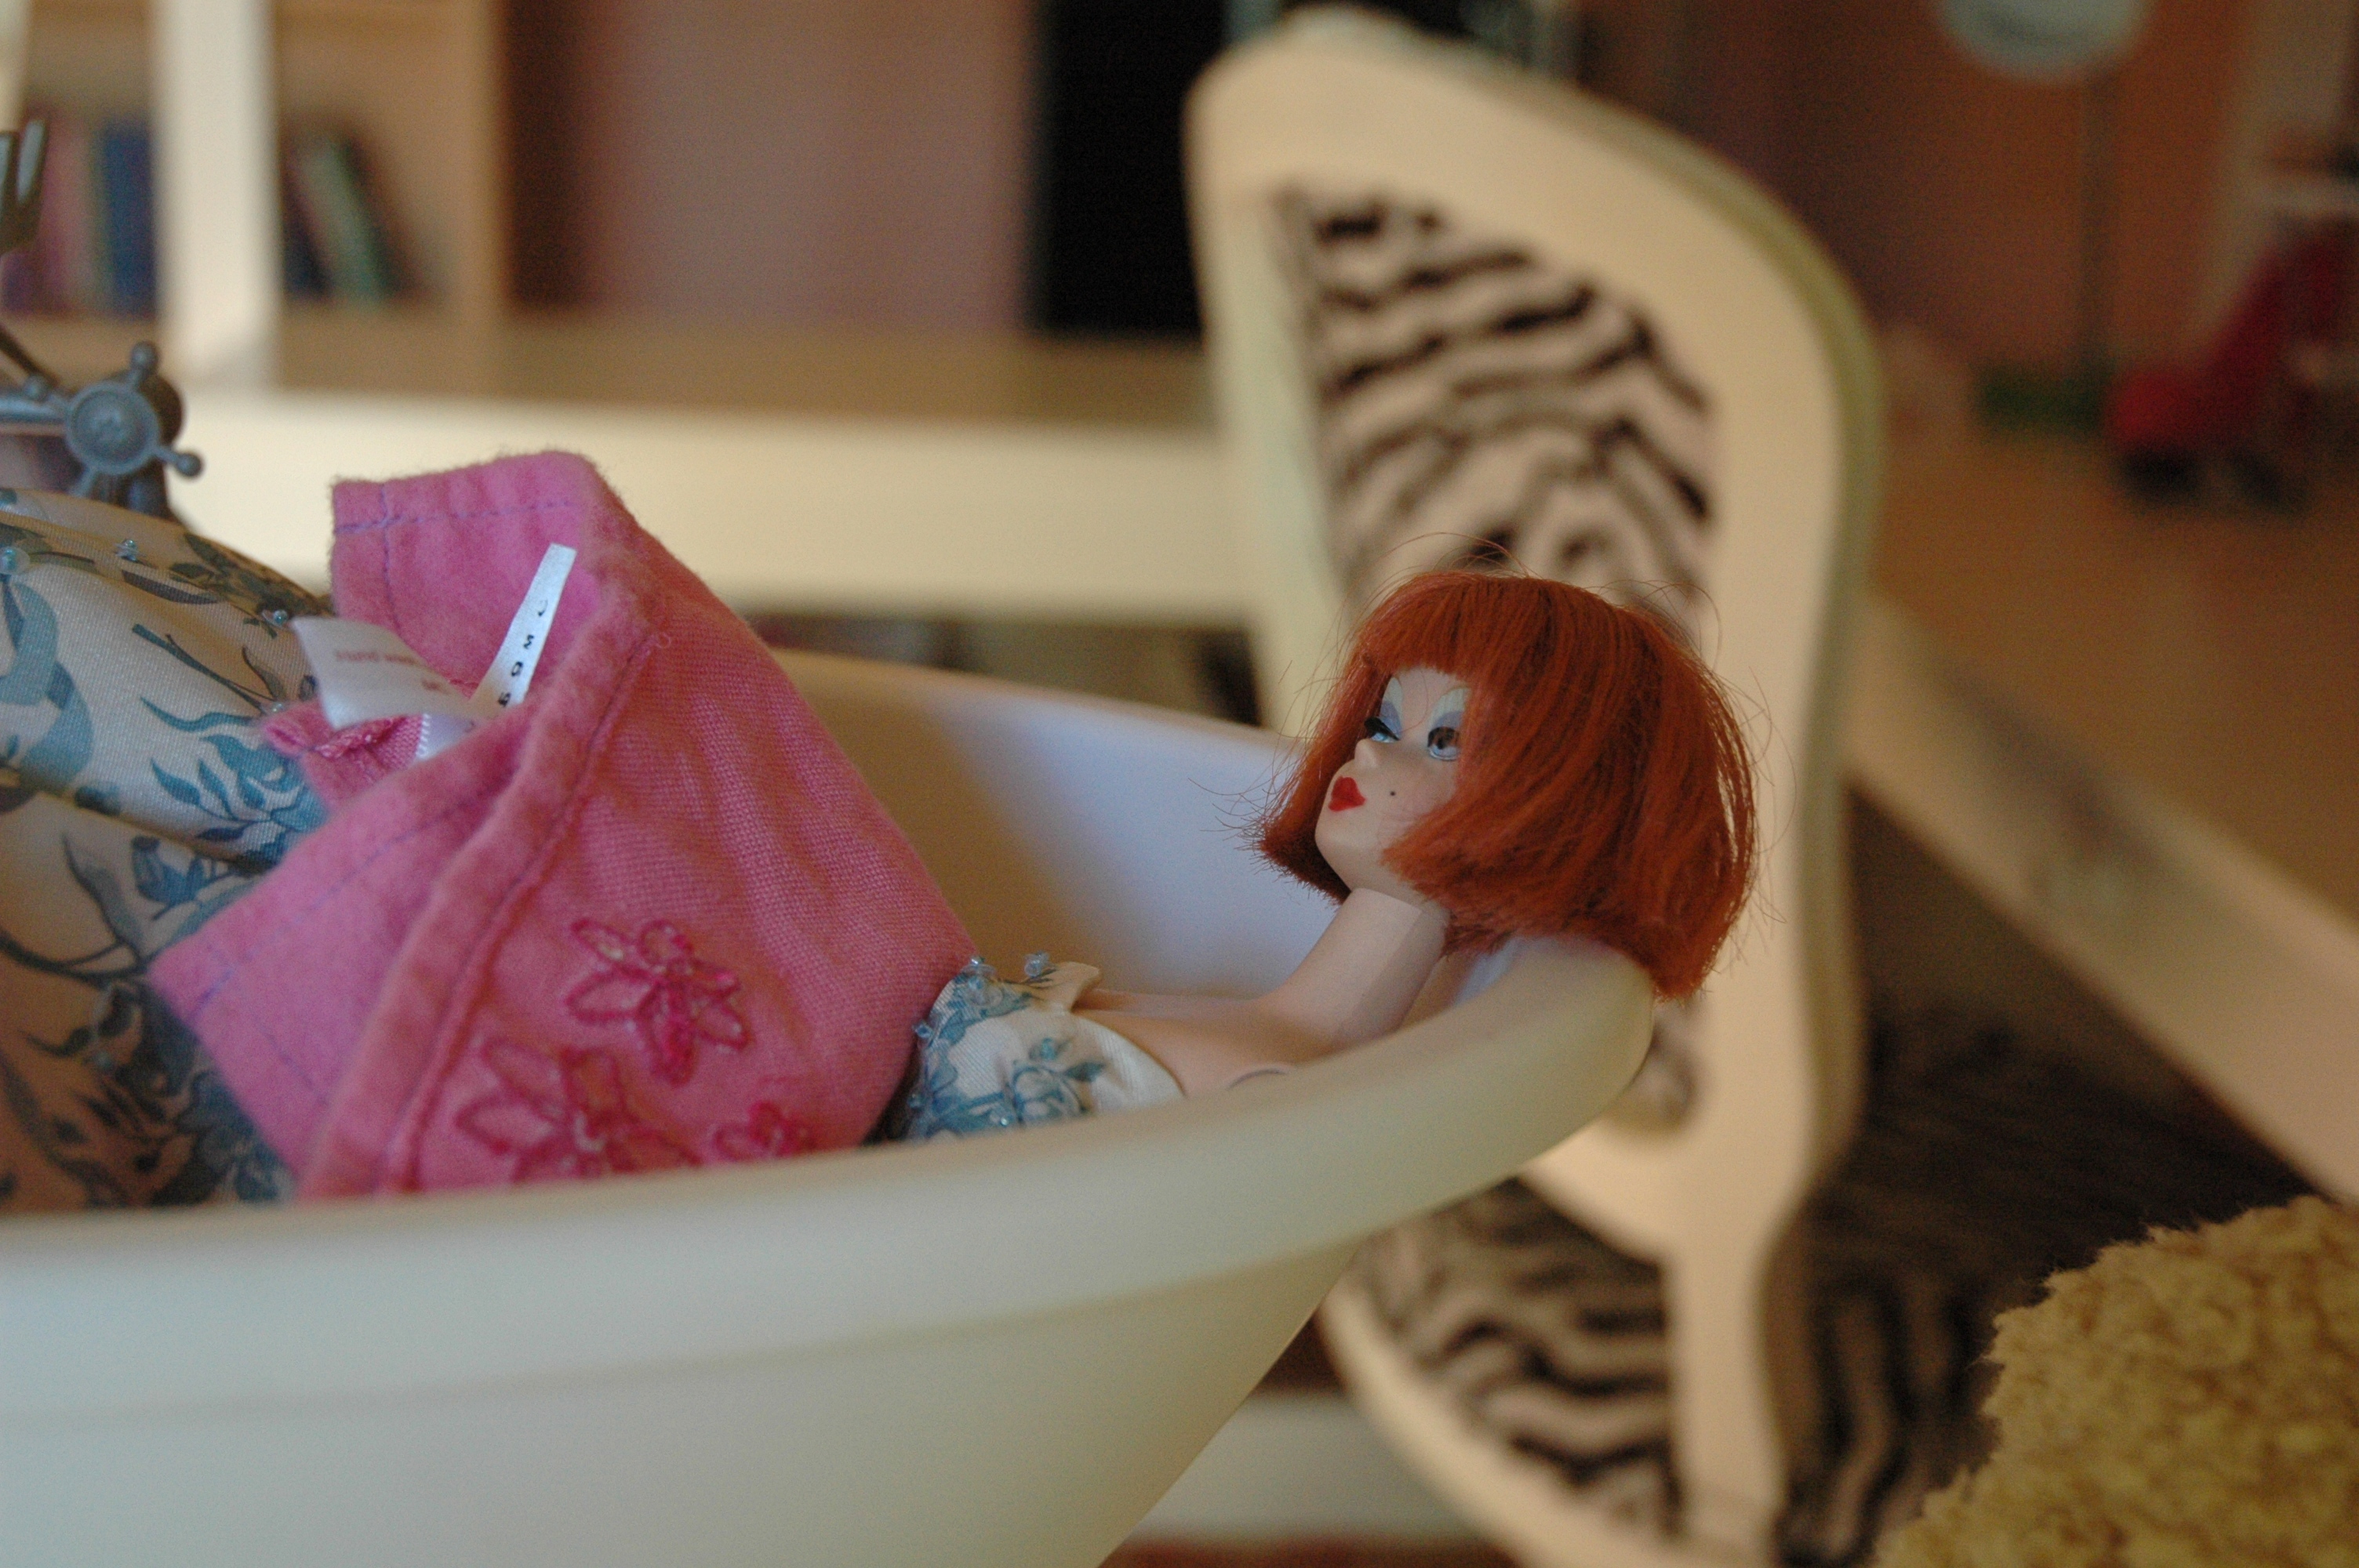 Barbie in Bathtub (photo by Yvonne Condes)